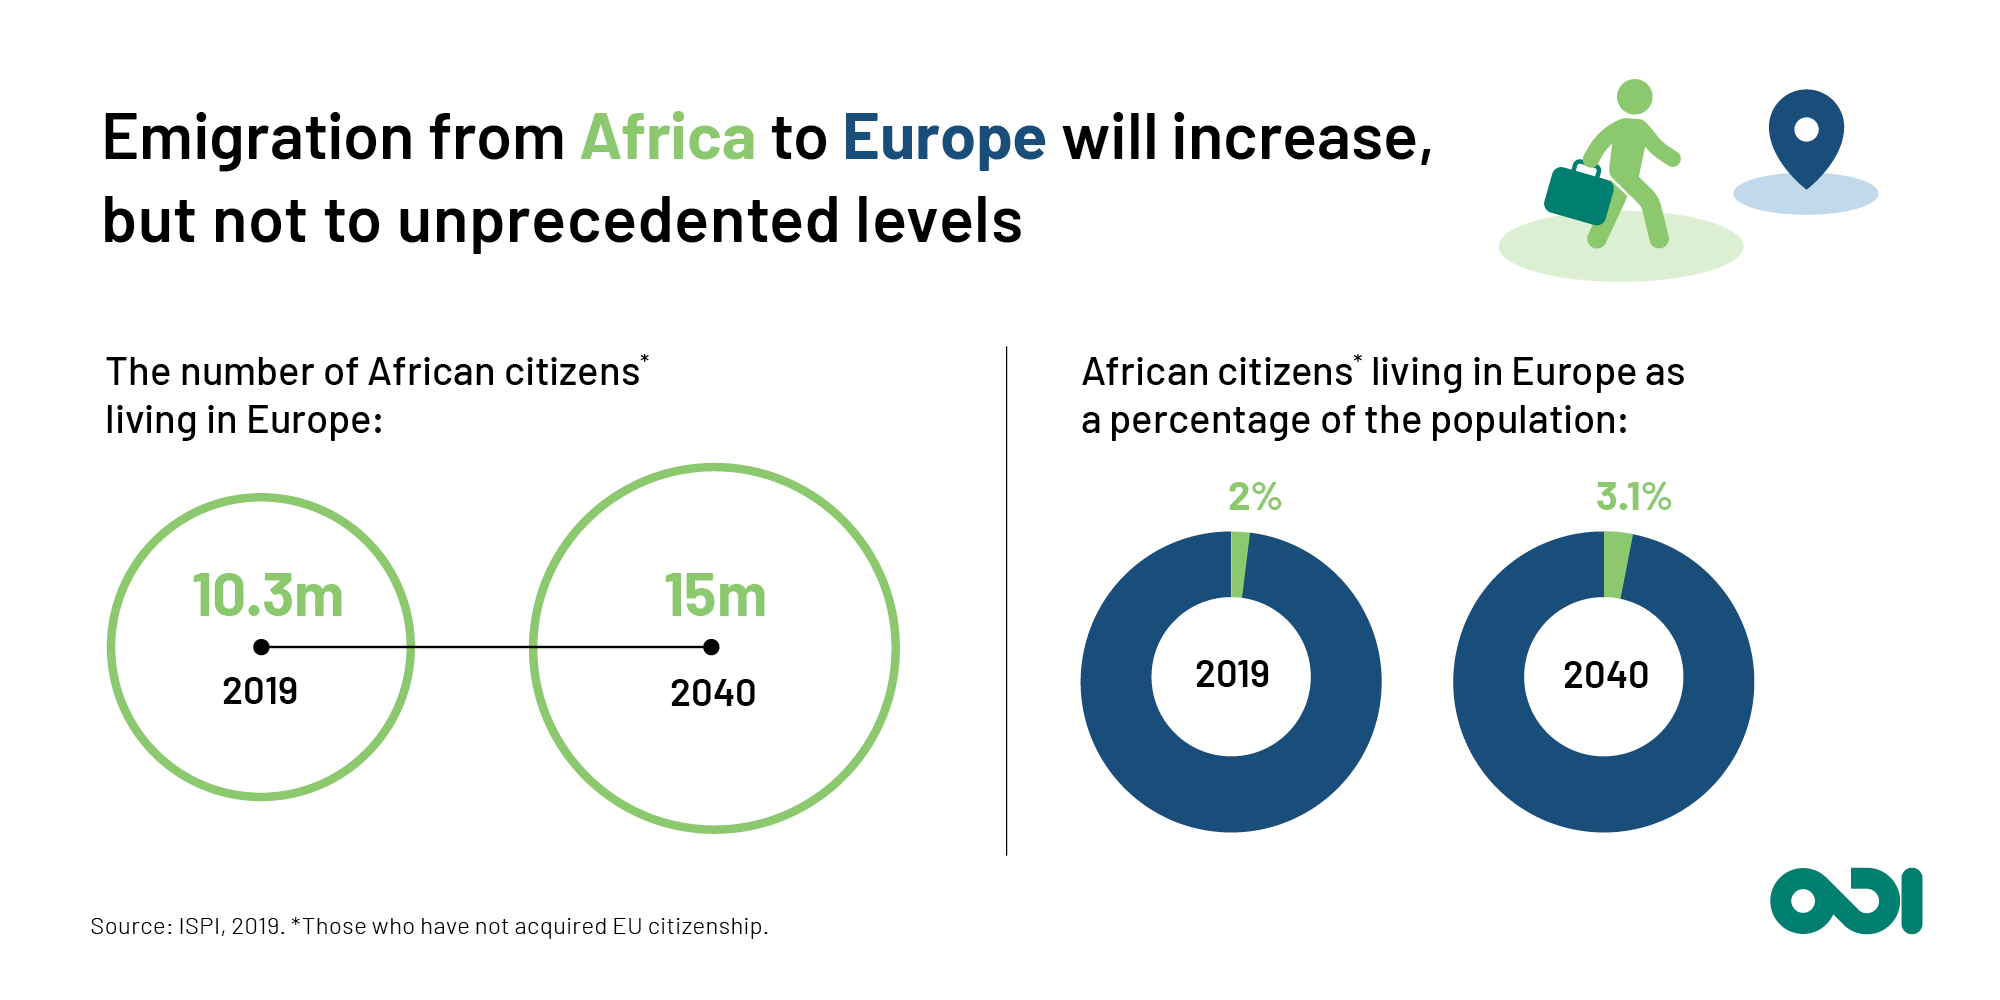 Emigration from Africa to Europe will increase, but not to unprecedented levels